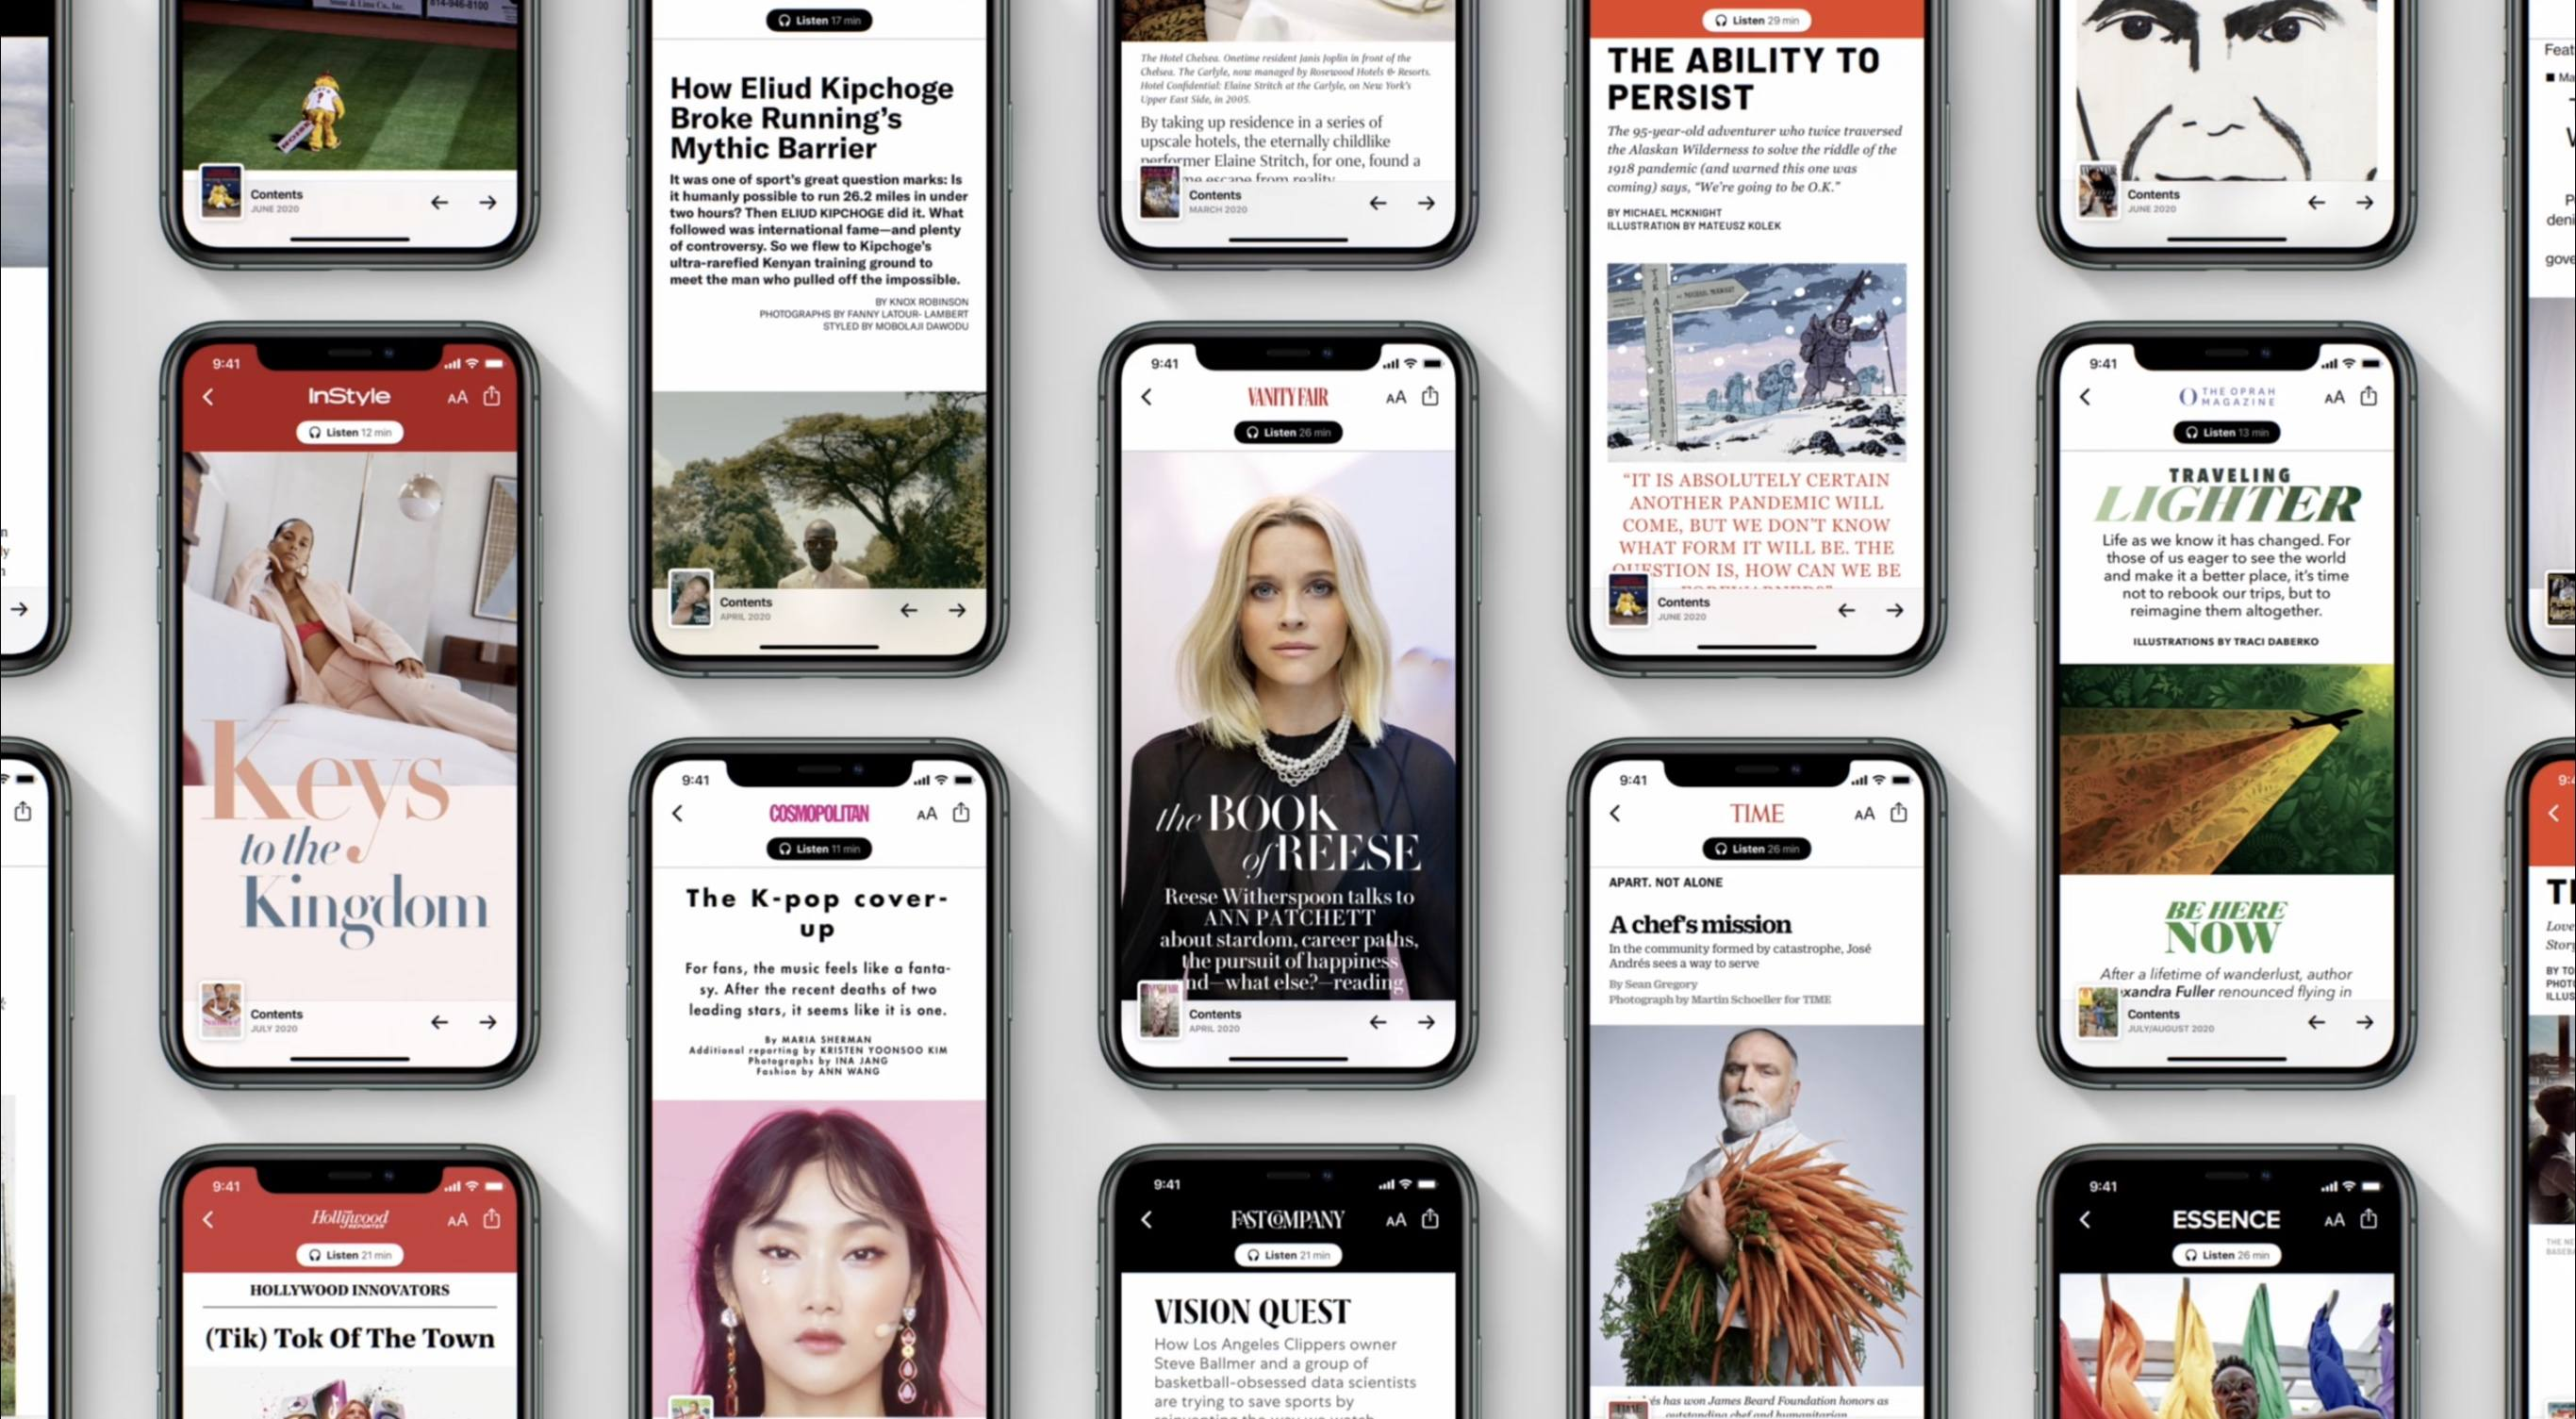 Apple Releases iOS 13.6 with Apple News Audio Features and Expanded Local News Coverage, Plus Digital Car Key Support